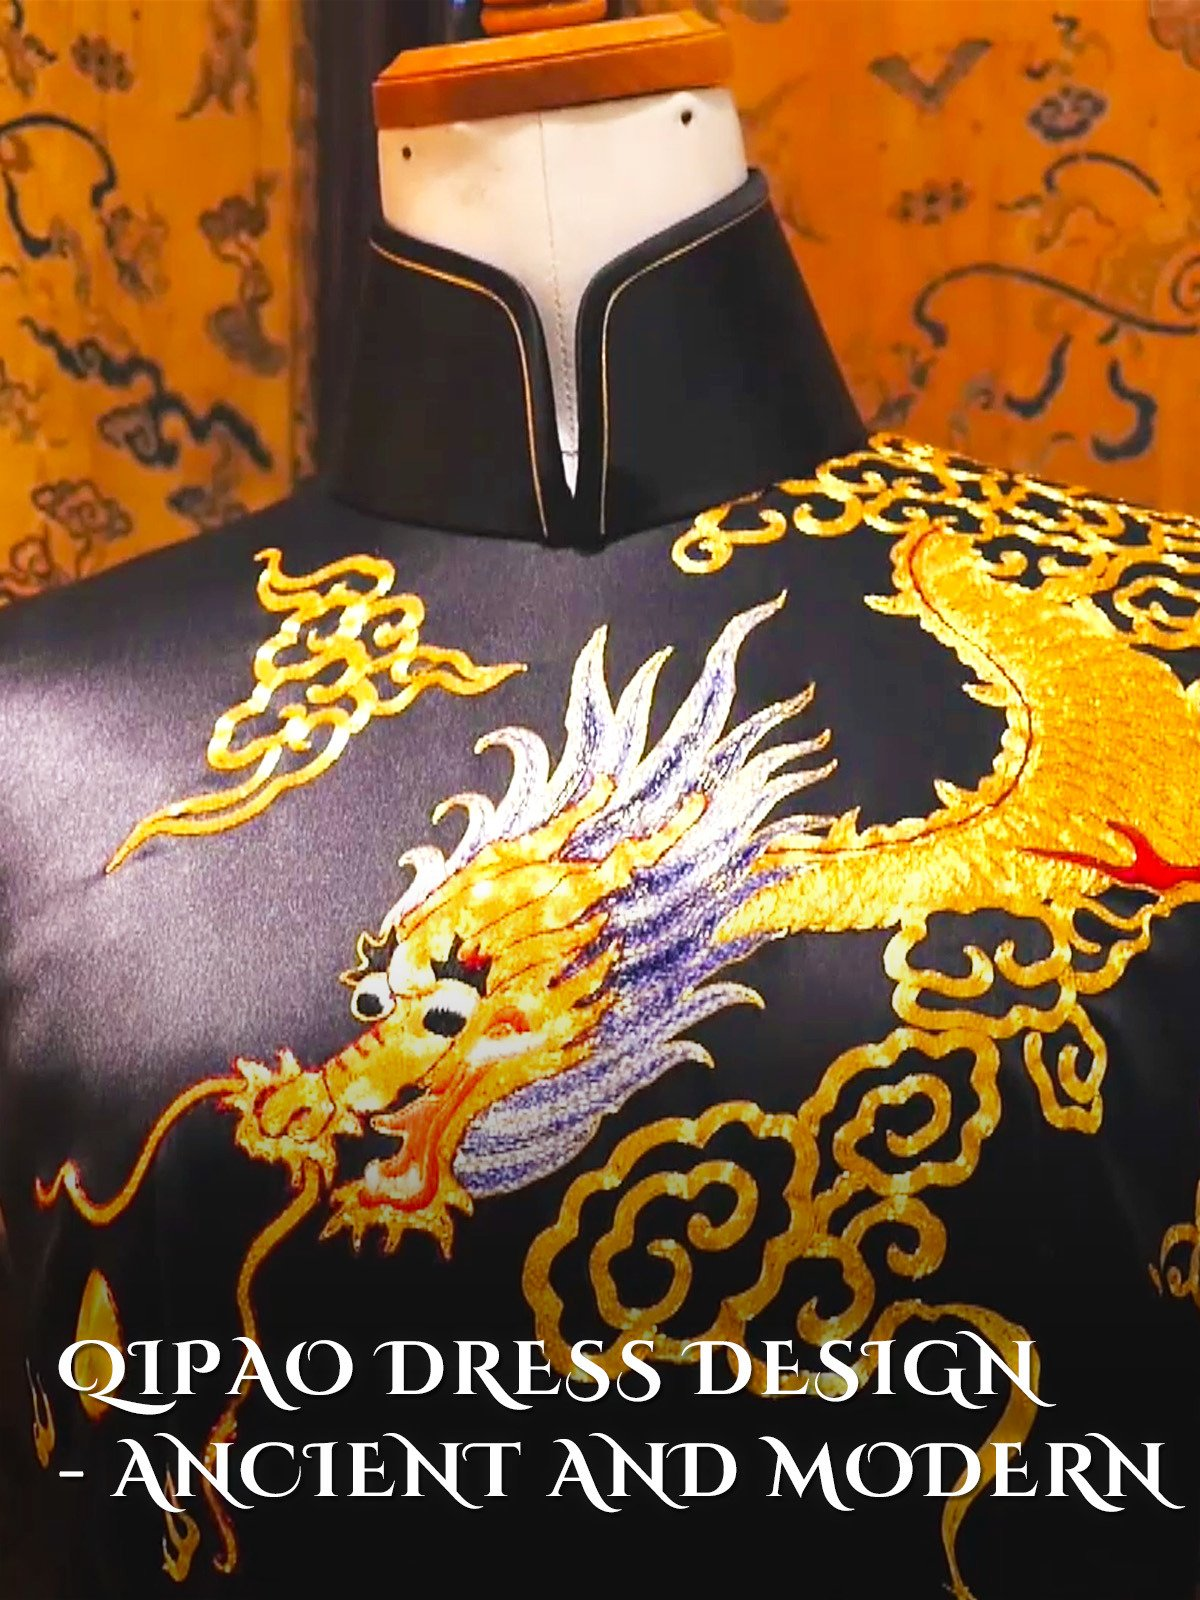 Qipao dress design